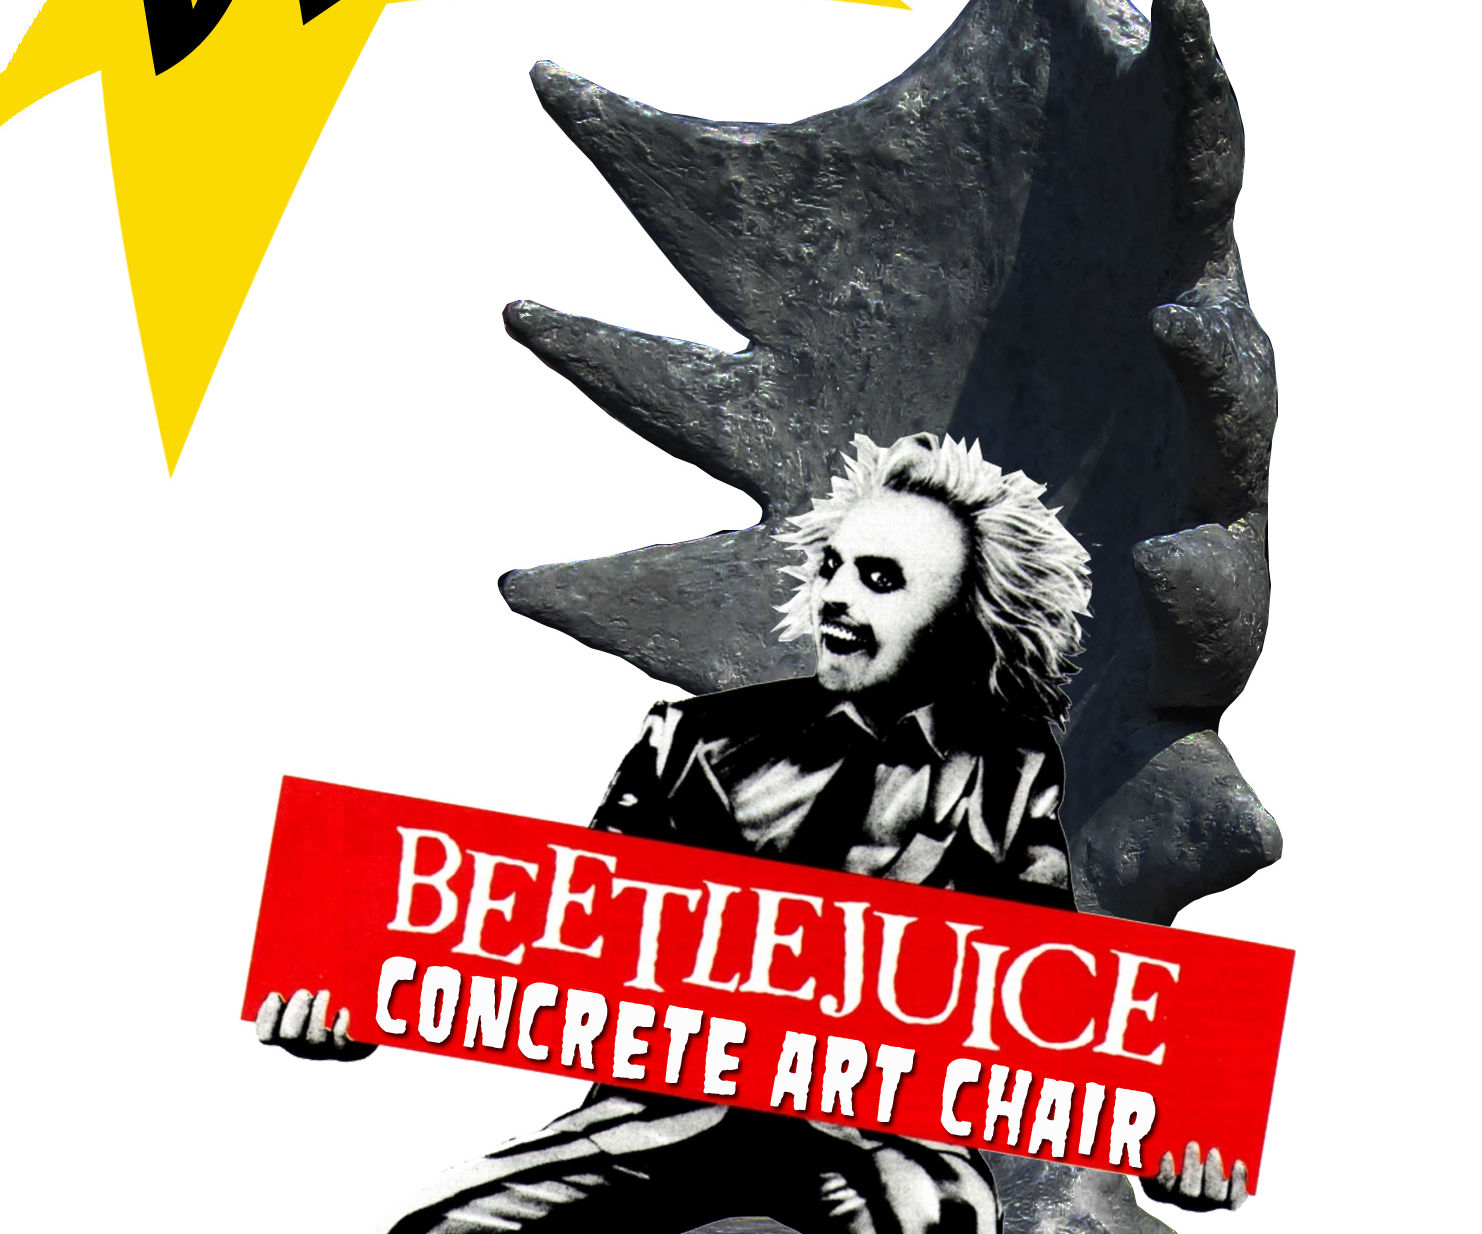 Beetlejuice Concrete Art Chair